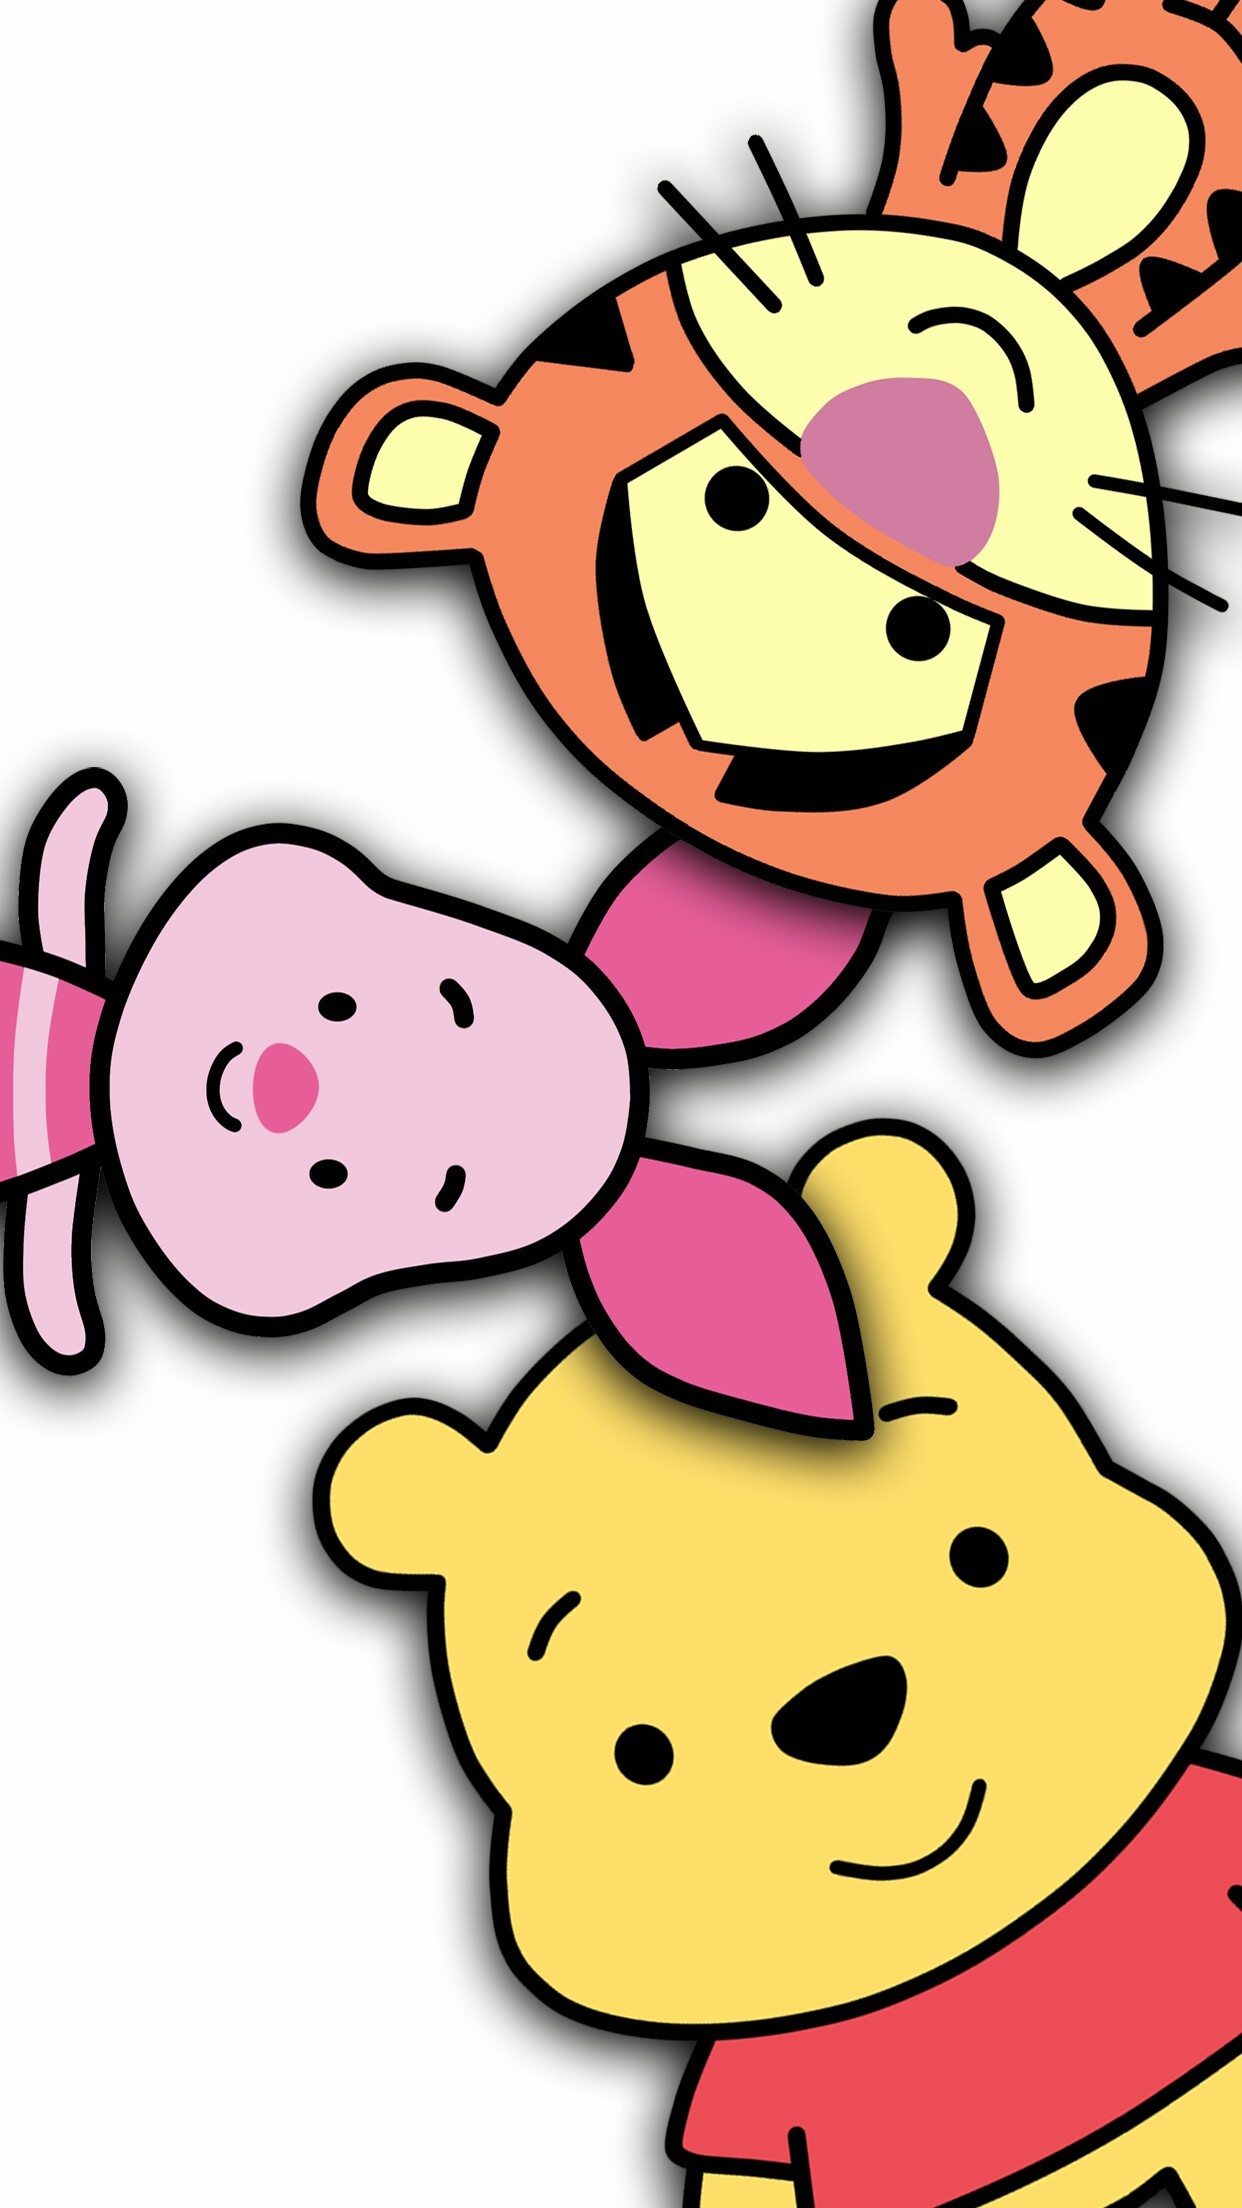 Piglet Wallpaper Iphone Pooh Bear Wallpapers 64 Images